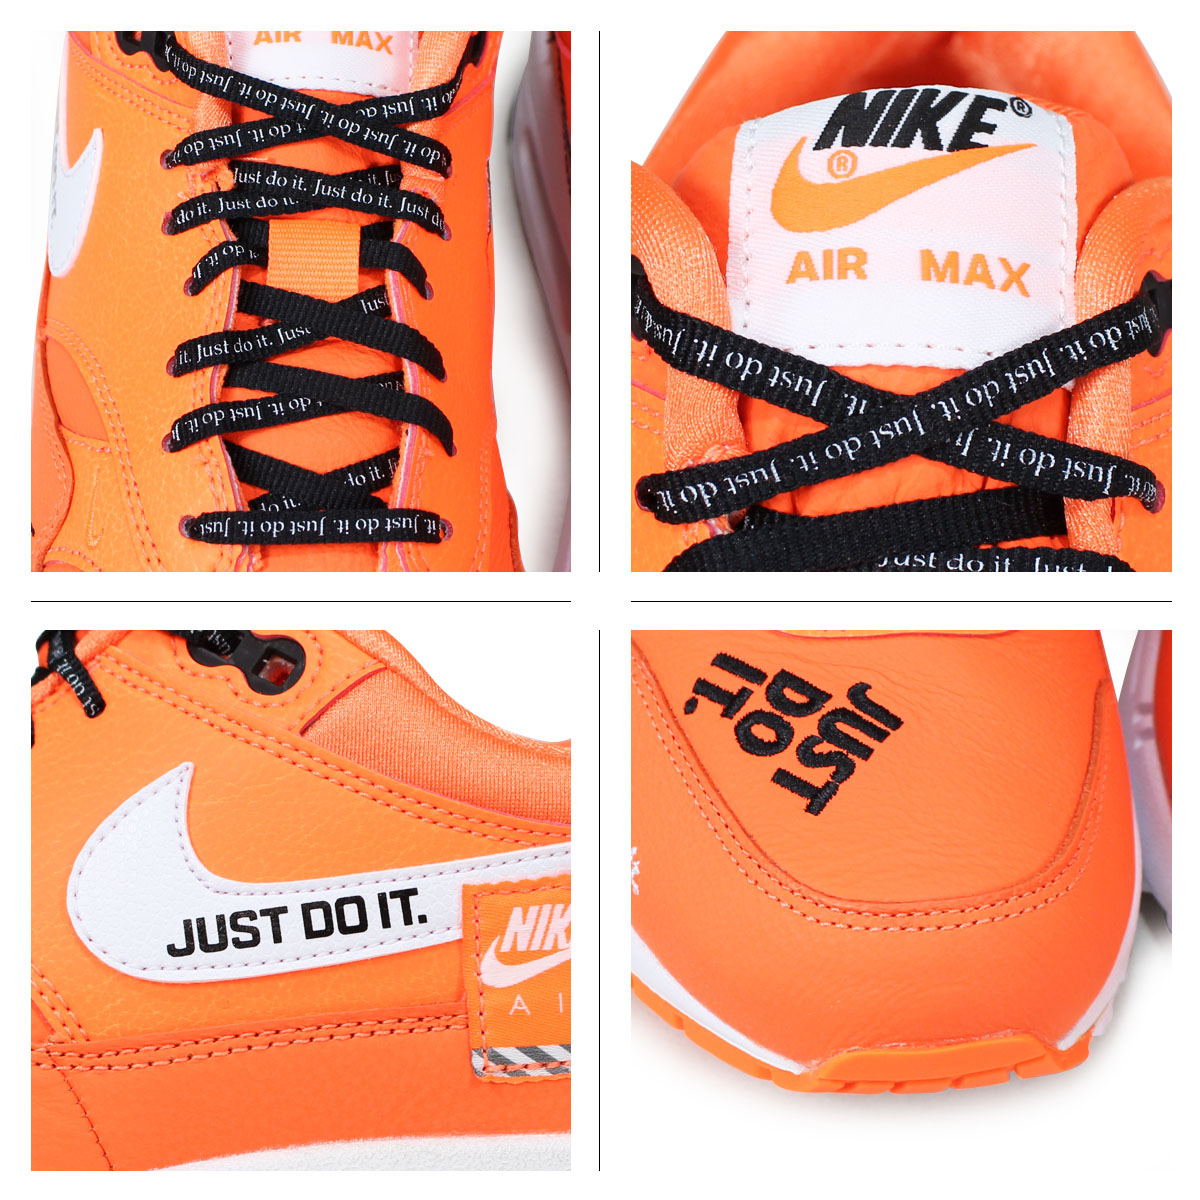 9ad23b1564 ... Nike NIKE Air Max 1 lady's men's sneakers WMNS AIR MAX 1 LX 917,691-800  ...